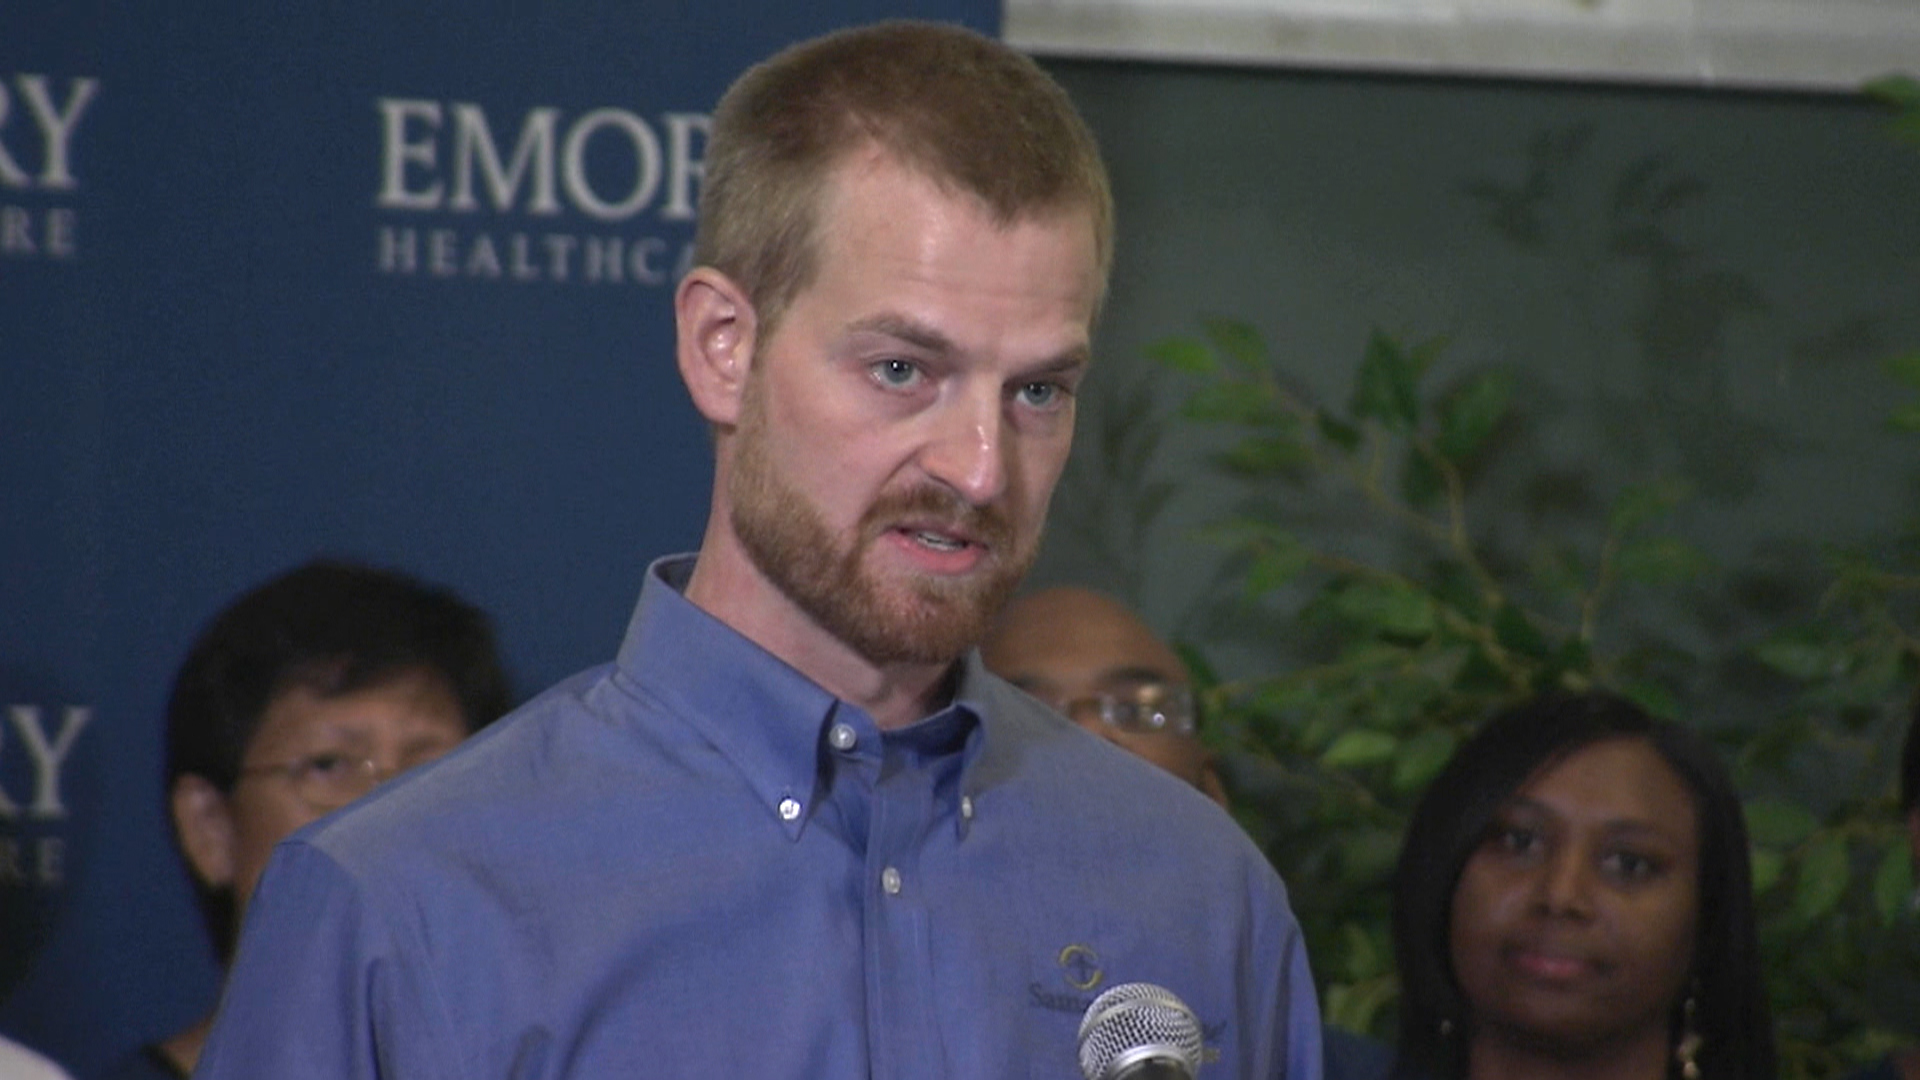 Ebola Test Comes Back Negative for Patient in California